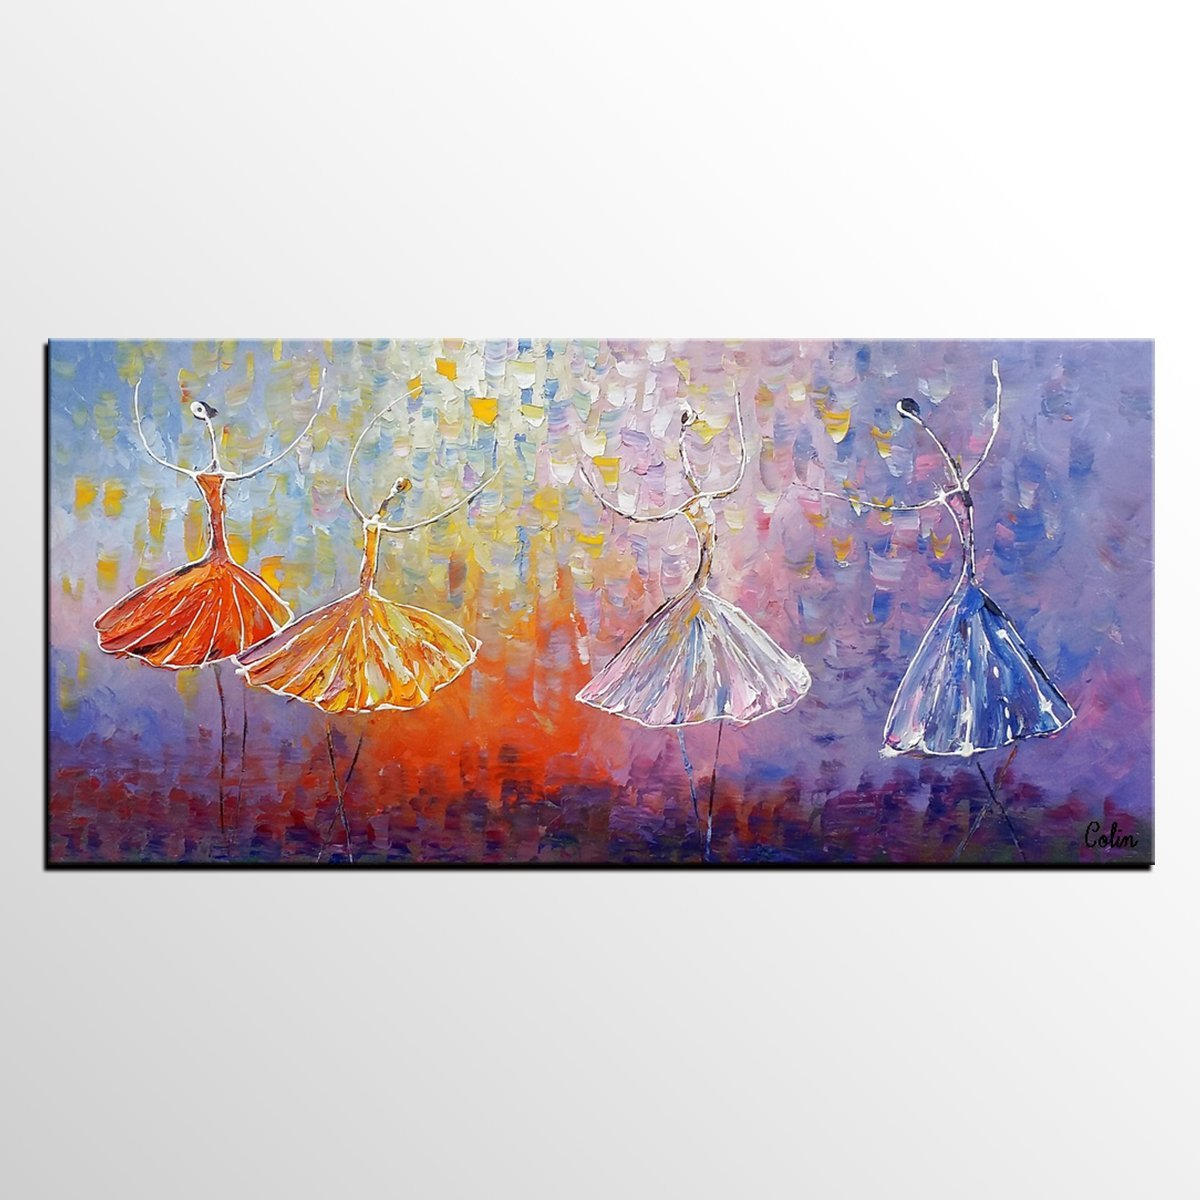 Painting on Sale, Ballet Dancer Art, Abstract Art Painting, Canvas Wall Art, Bedroom Wall Art, Canvas Art, Modern Art, Contemporary Art